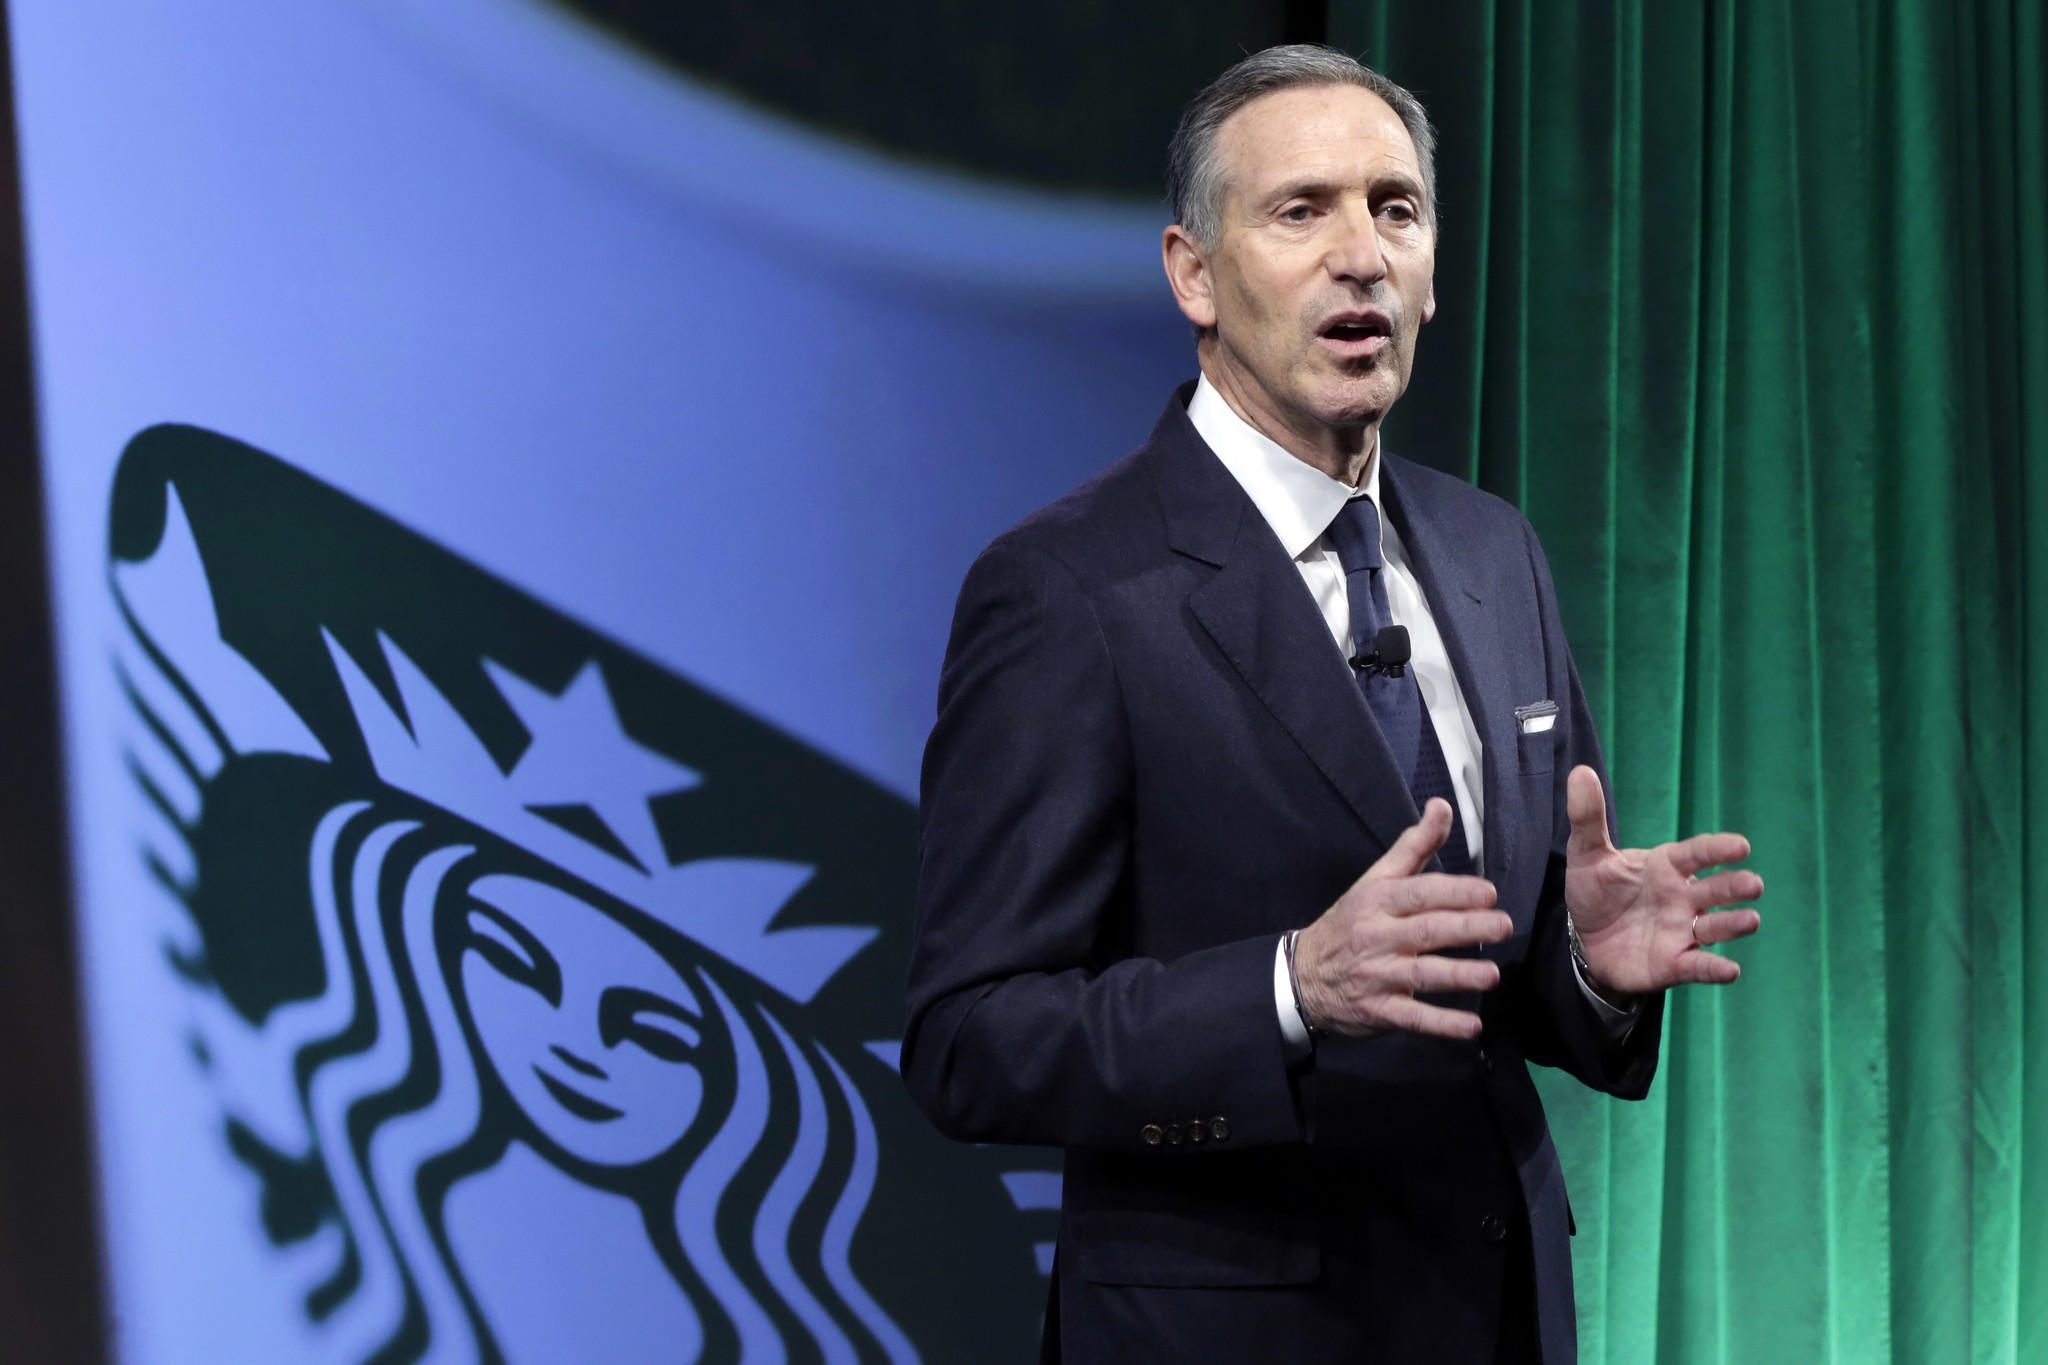 Syrian family decries trumps ban on refugees - Starbucks Chief Executive Howard Schultz Said The Seattle Coffee Company Is Developing Plans To Hire 10 000